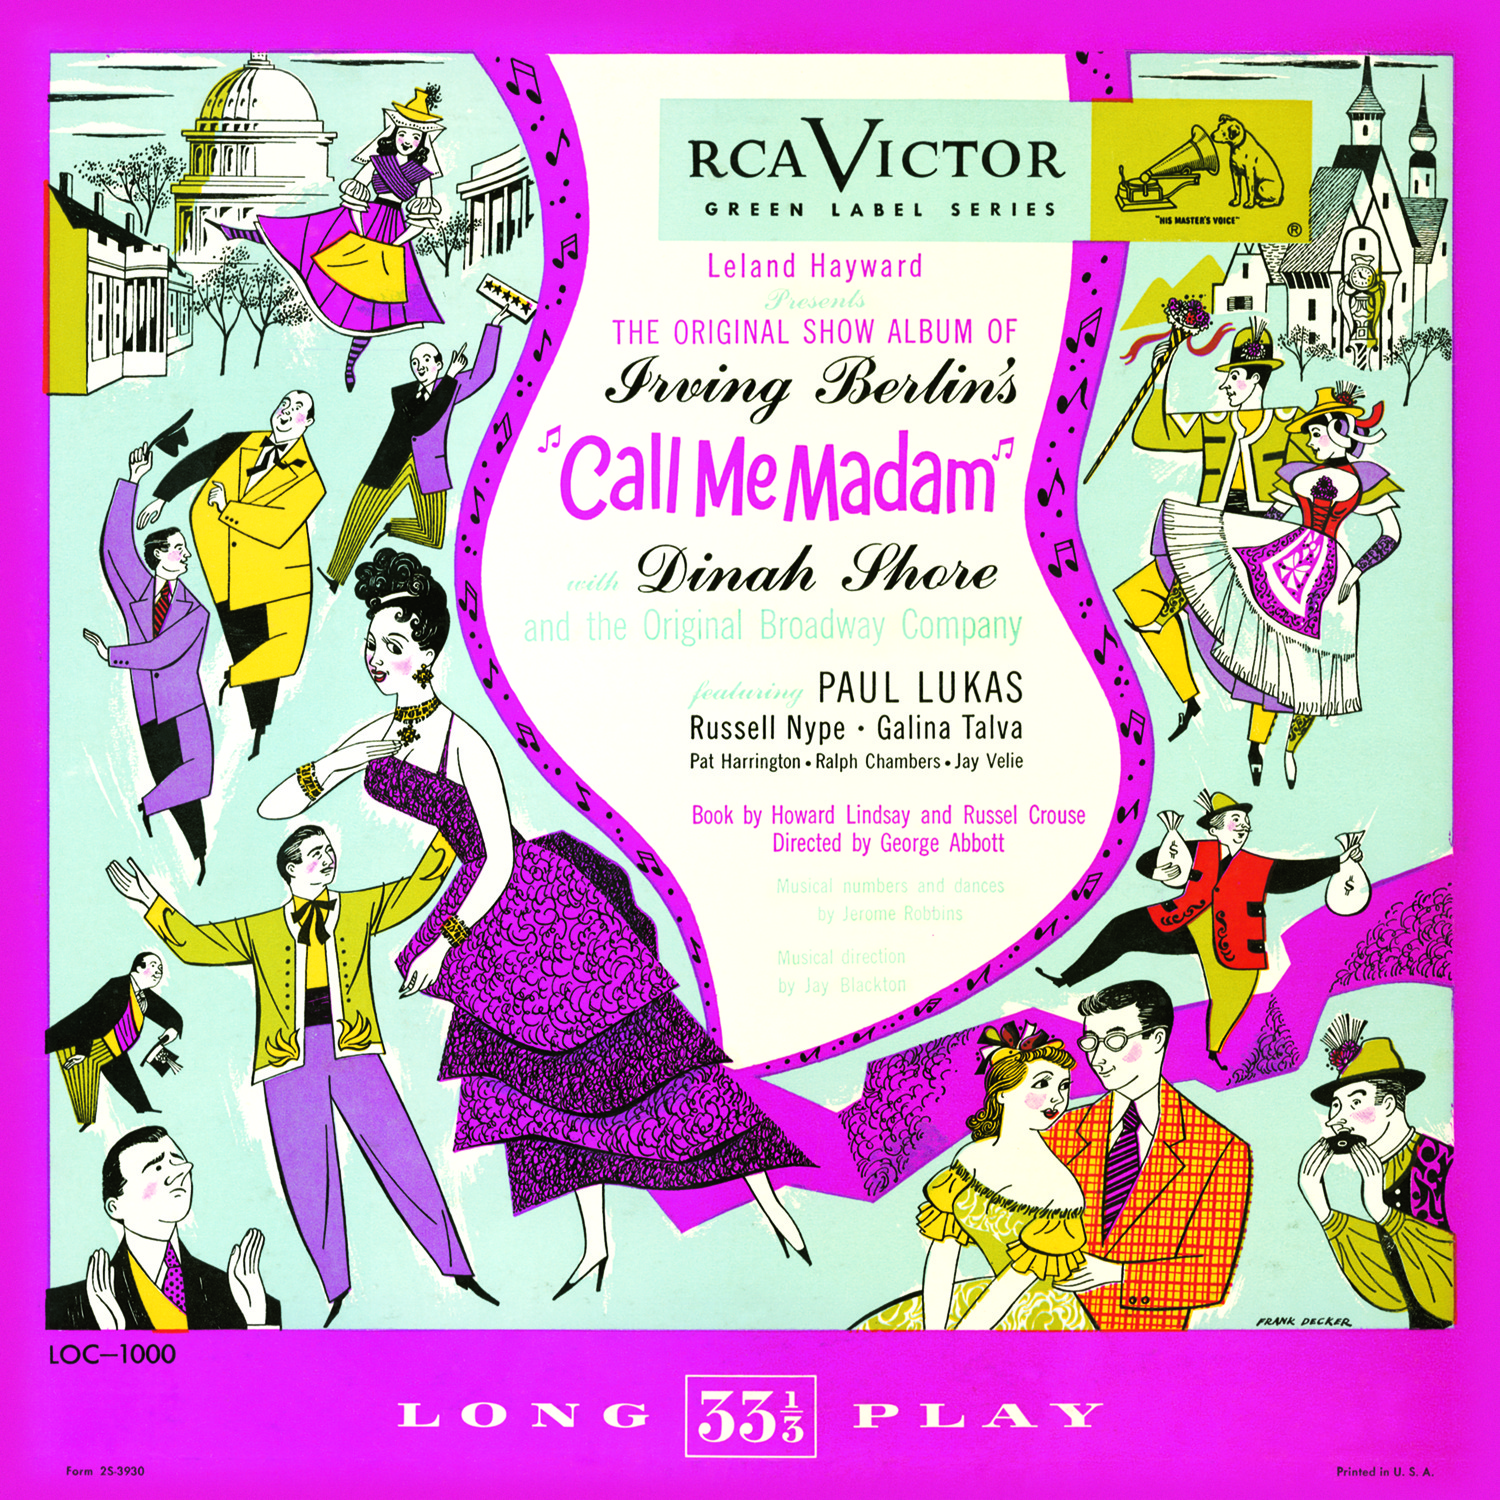 Call Me Madam – Musical Cast Album 1950